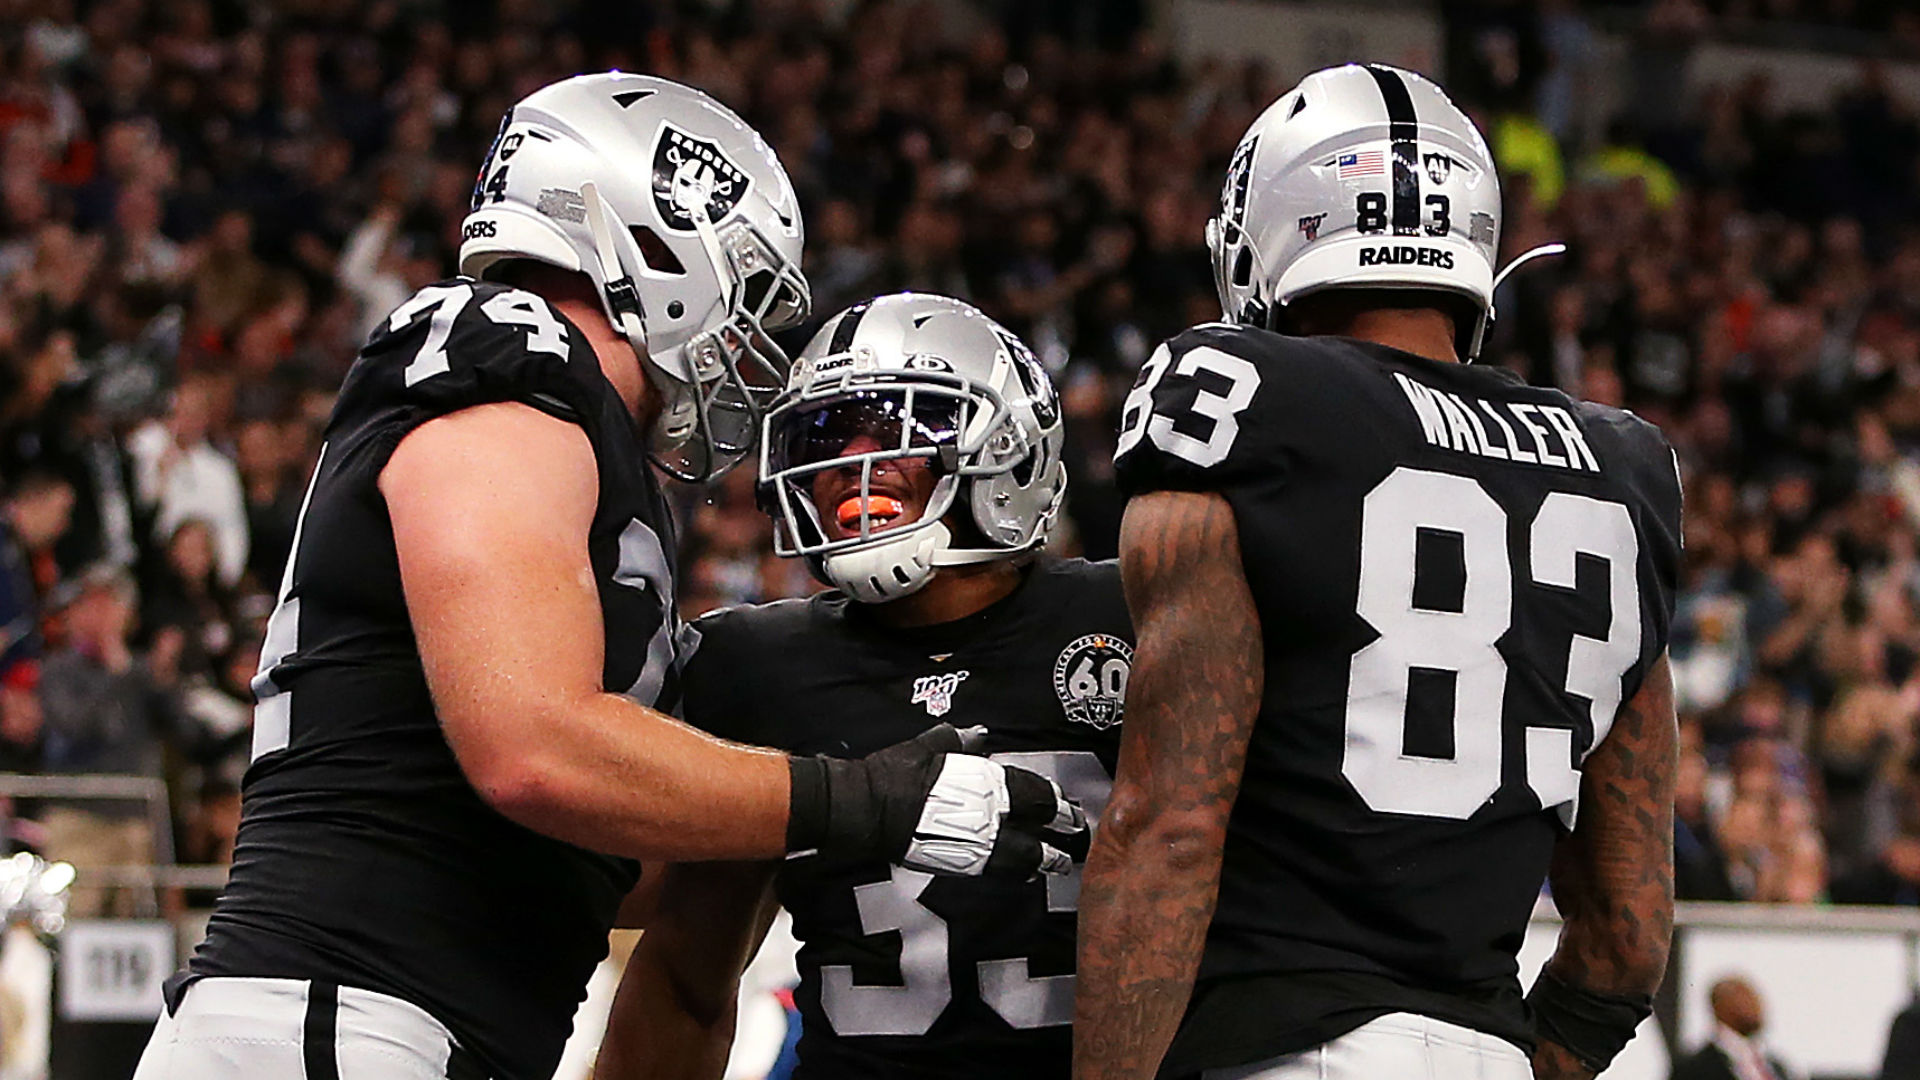 Khalil Mack's talk inspired Raiders to win, says Richie Incognito